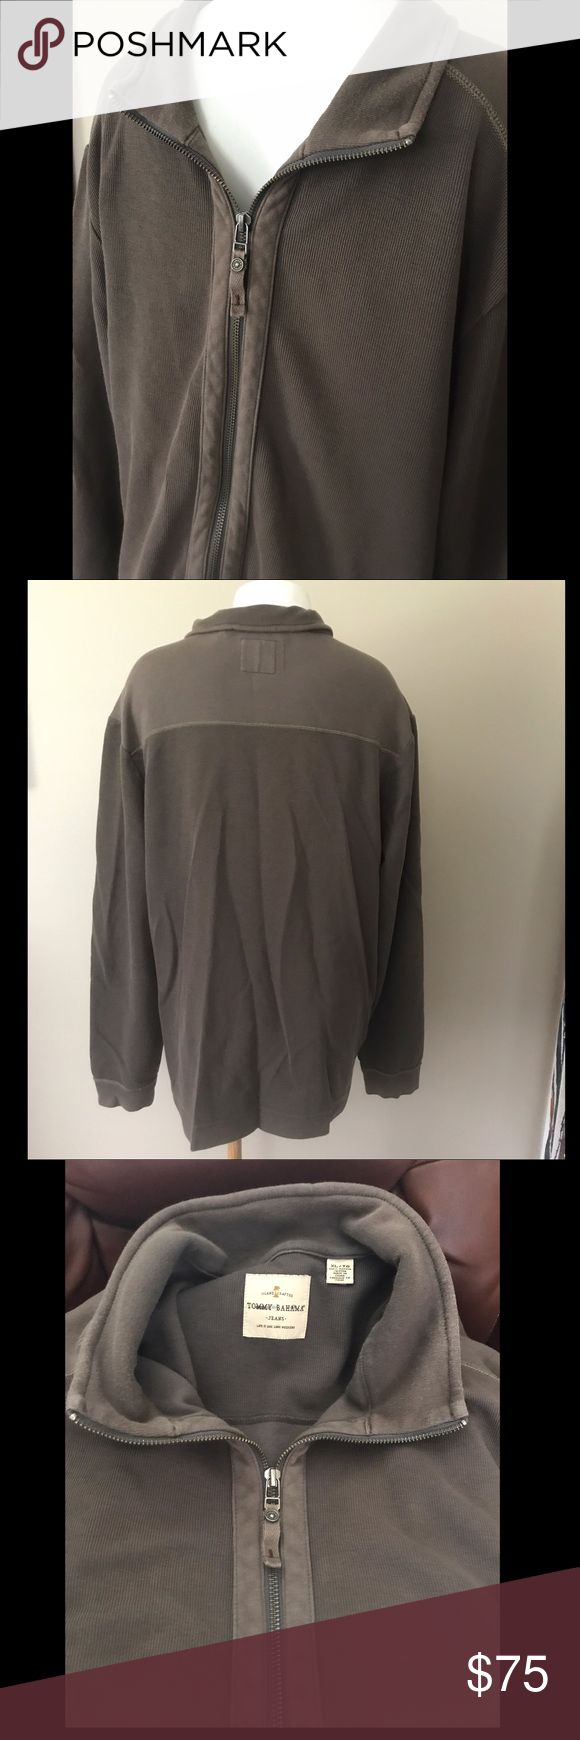 Tommy Bahama Brown Zip Up Jacket Nice warm soft brown zip up collared jacket top. Had 2 pockets. 100% cotton. Perfect condition. Tommy Bahama Jackets & Coats Lightweight & Shirt Jackets